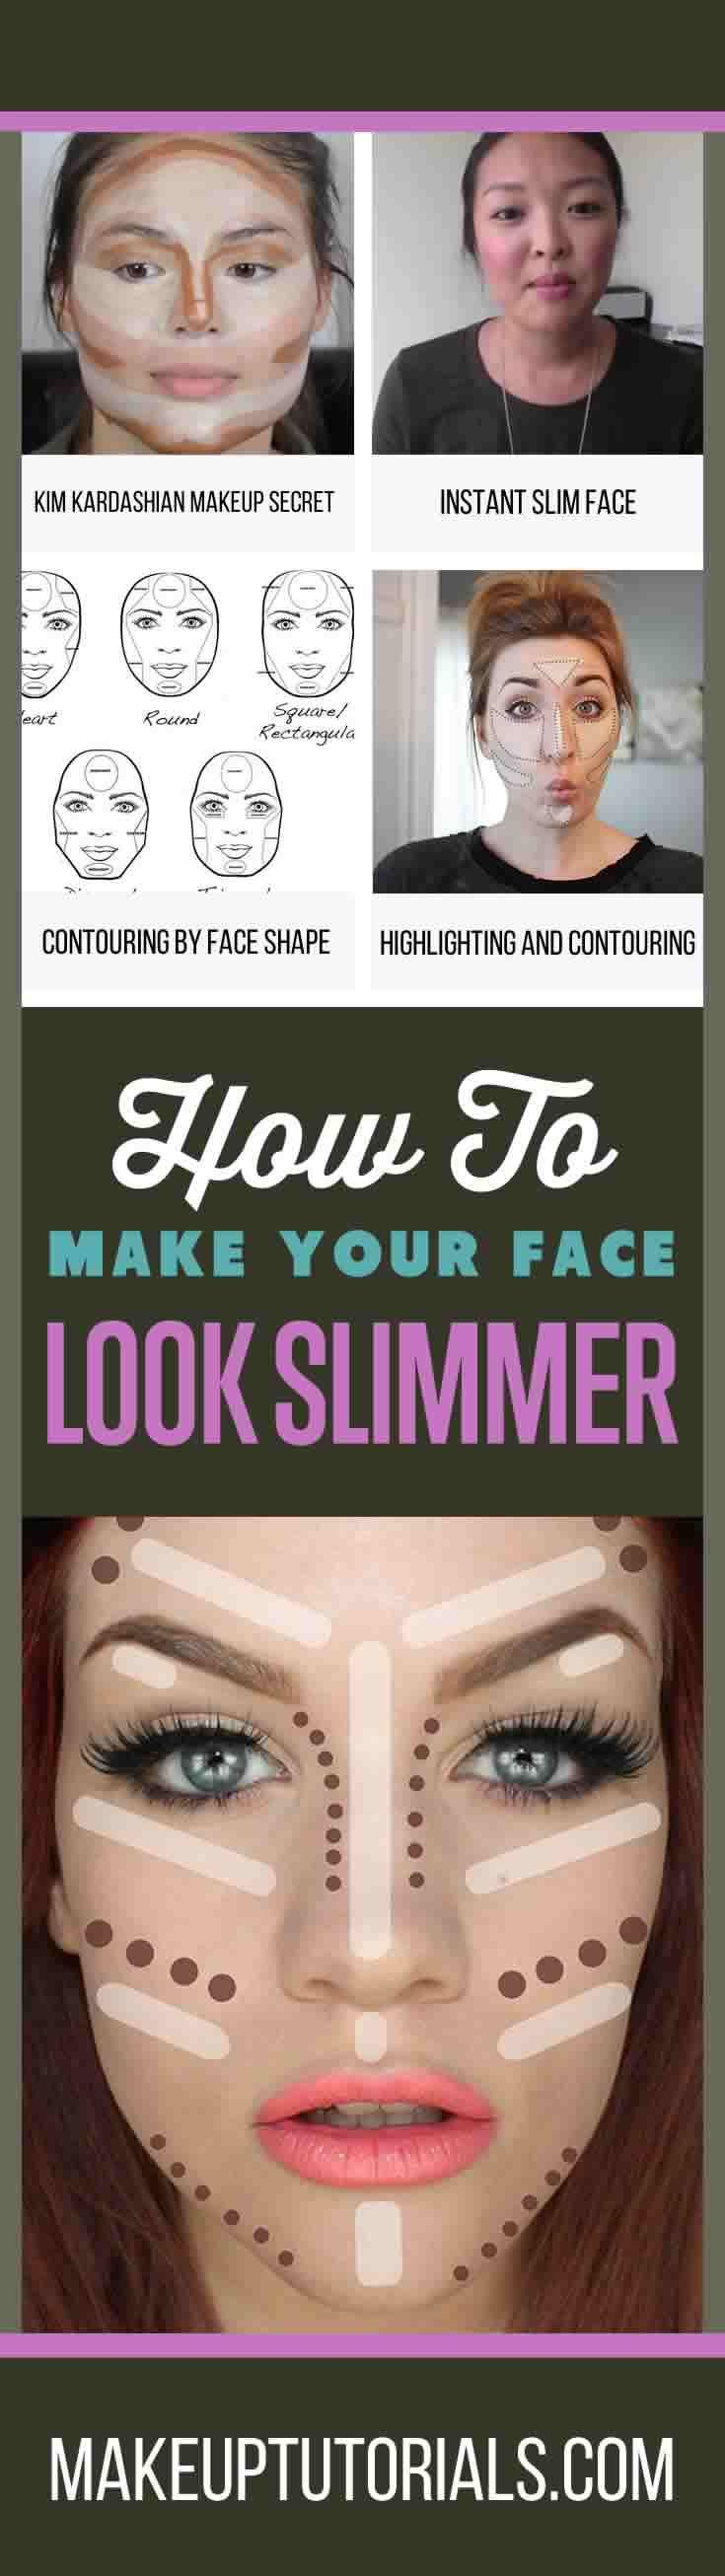 How To Make Your Face Look Slimmer   Easy DIY Tips For Making Your Face Skinnier With Contouring By Makeup Tutorials. http://makeuptutorials.com/5-tutorials-teach-make-face-look-thinner/